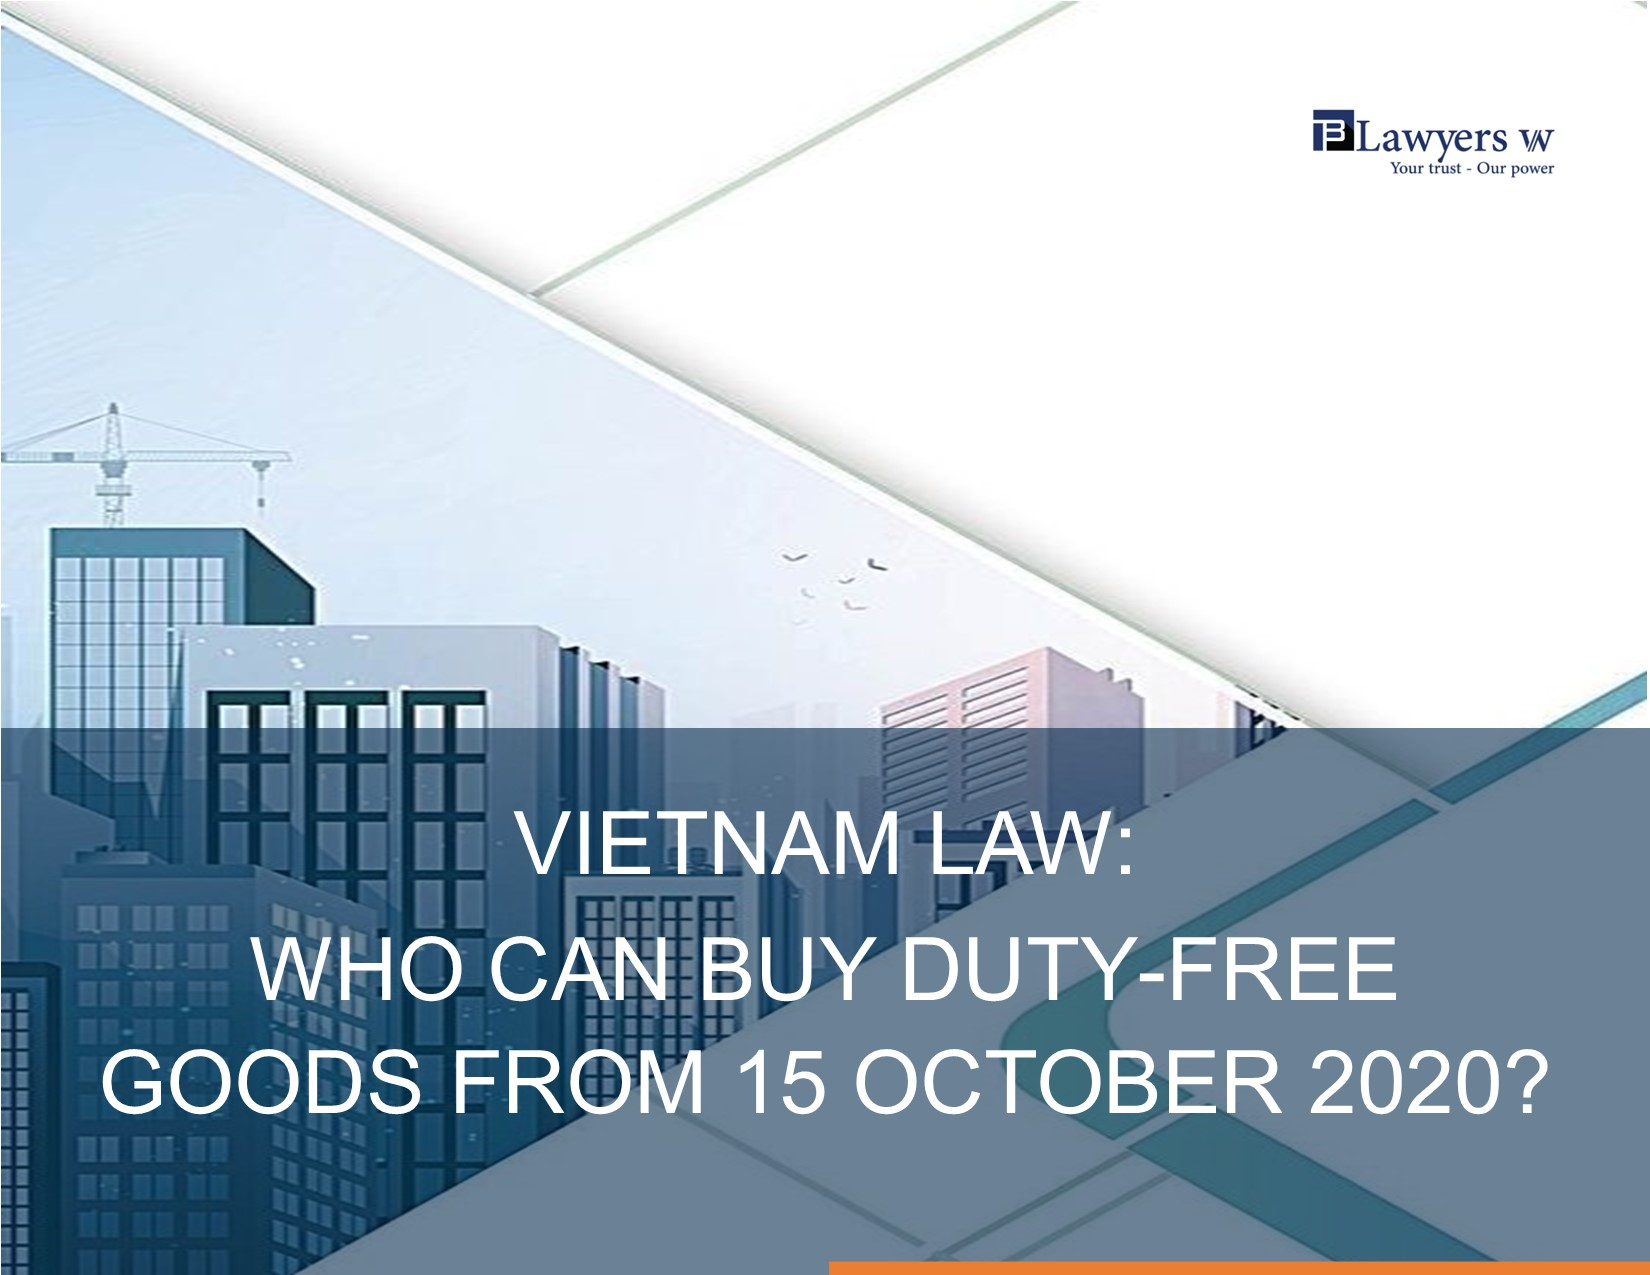 BLawyers Vietnam - Who can buy duty-free goods from 15 Oct 2020